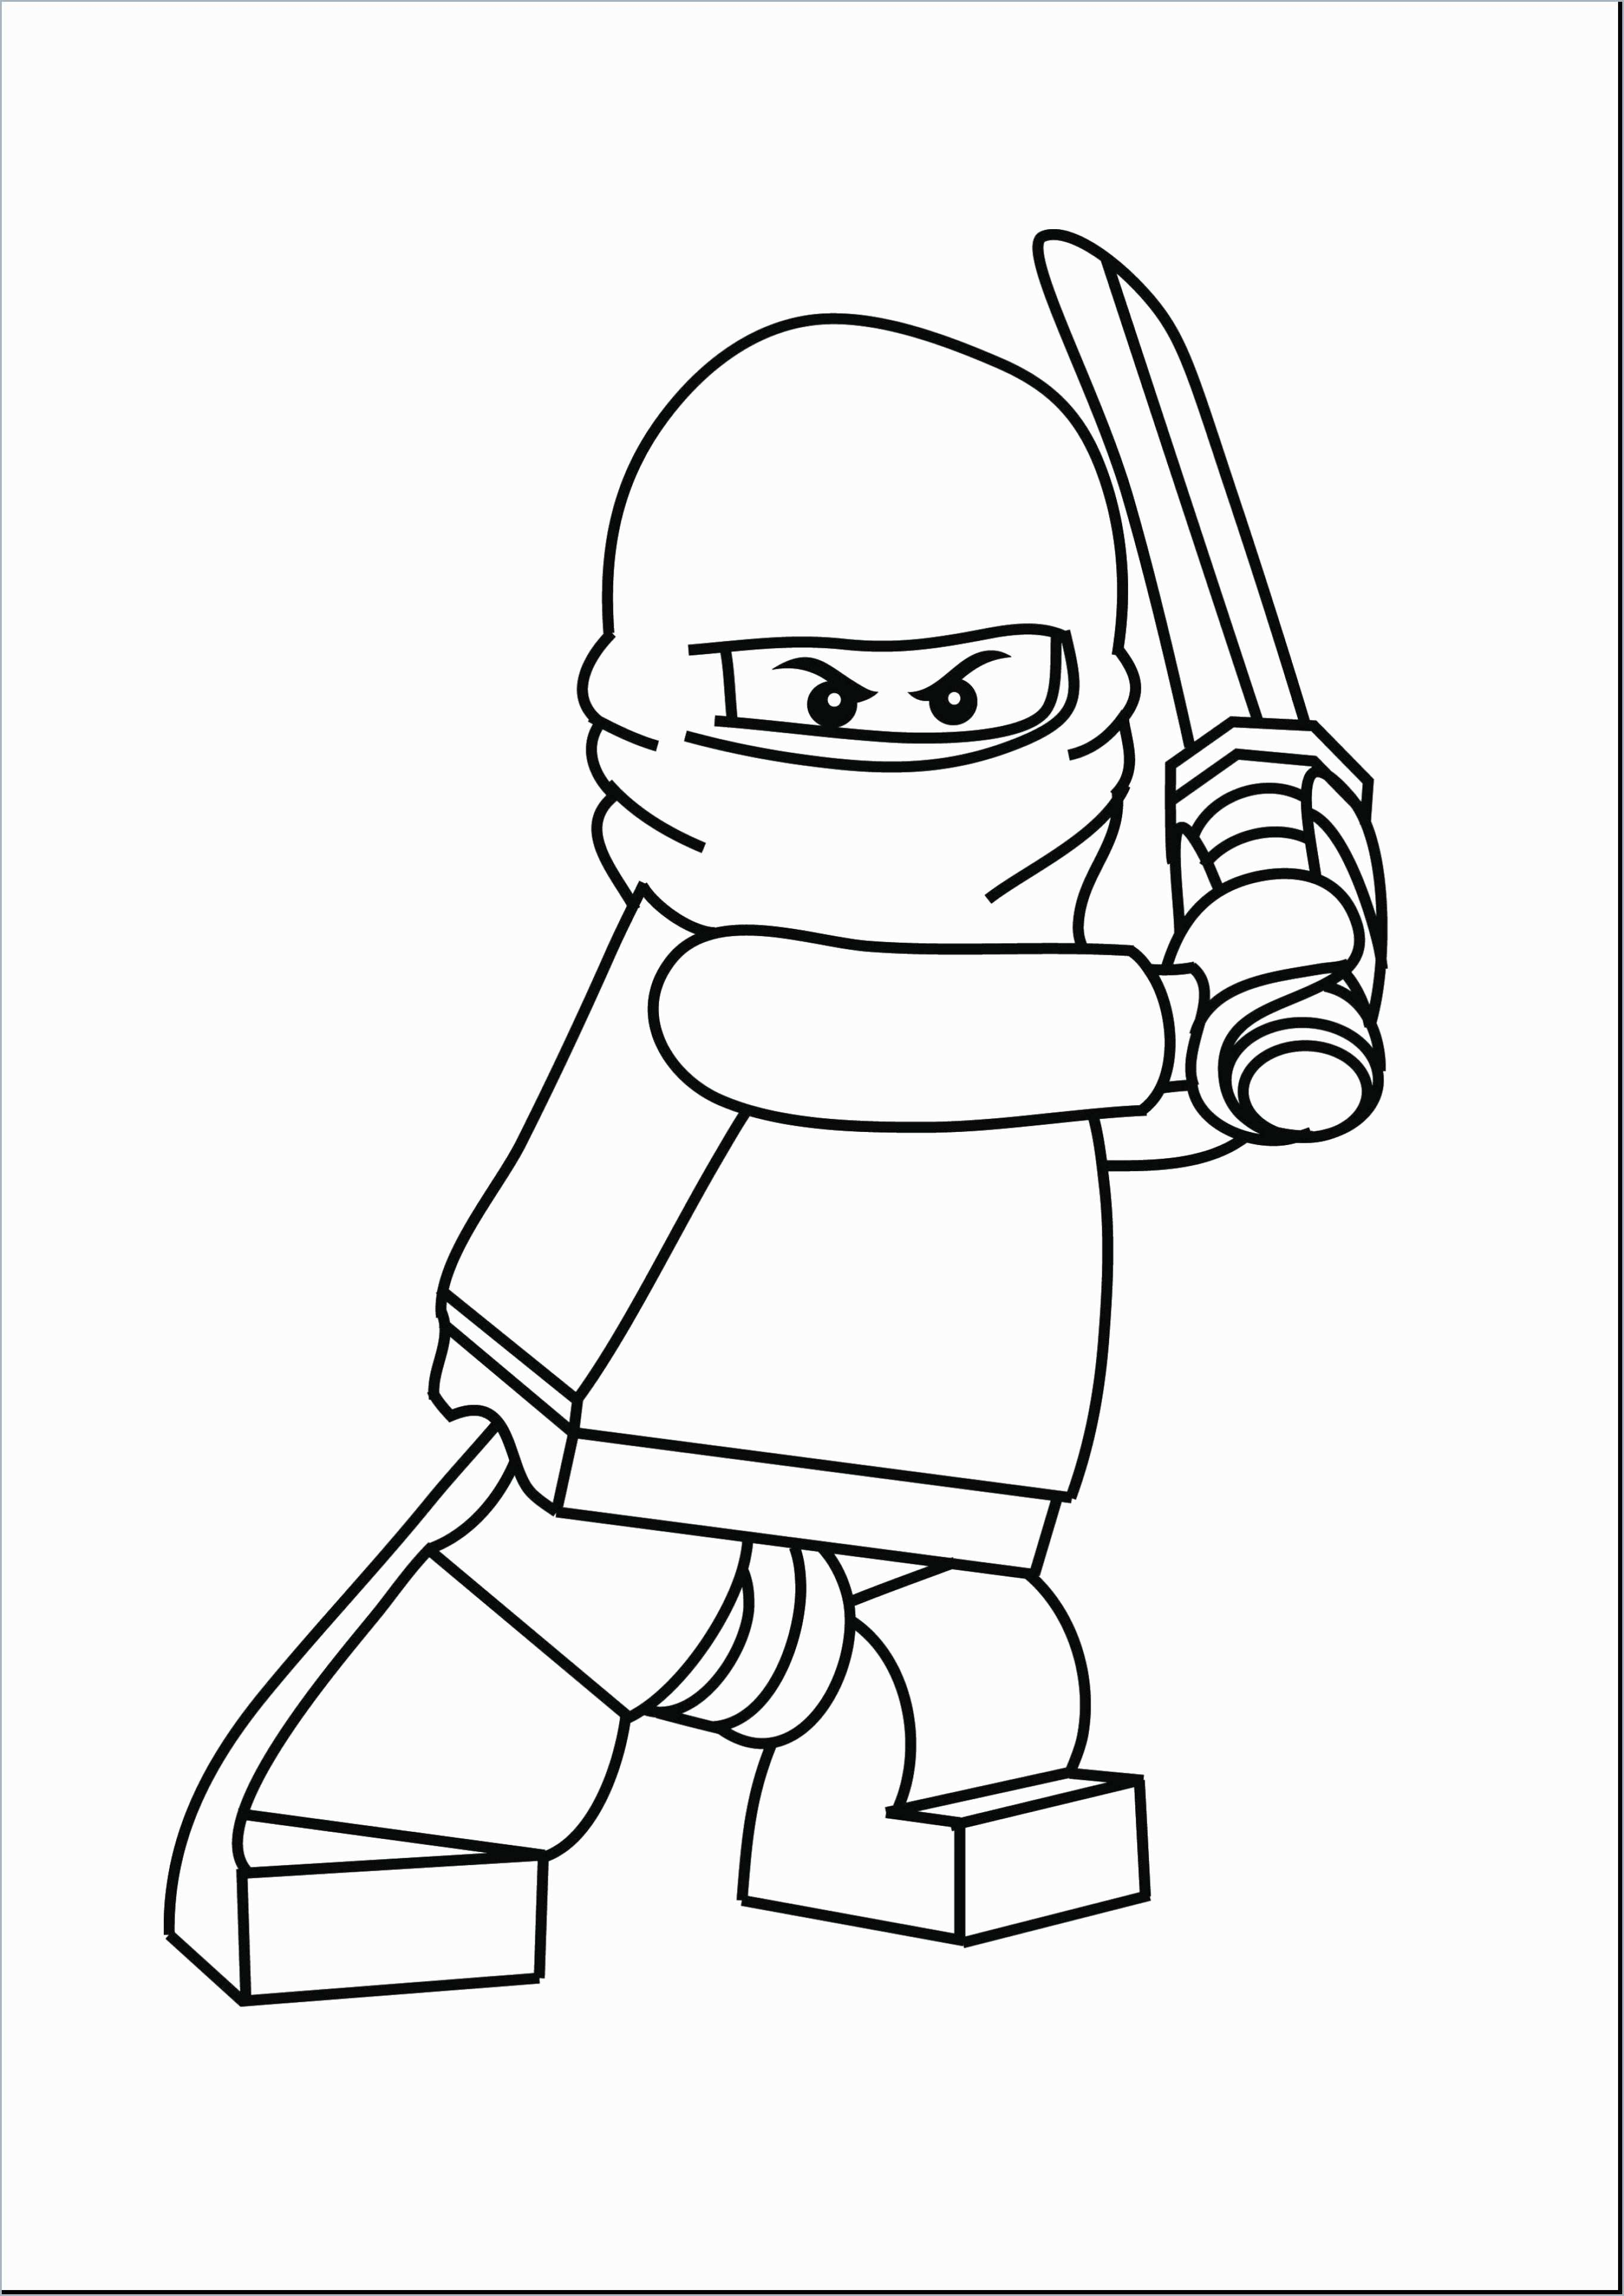 Coloring Pages : Print Your Own Coloring Book Fabulous Make Pages Of - Make A Printable Picture Book Online Free